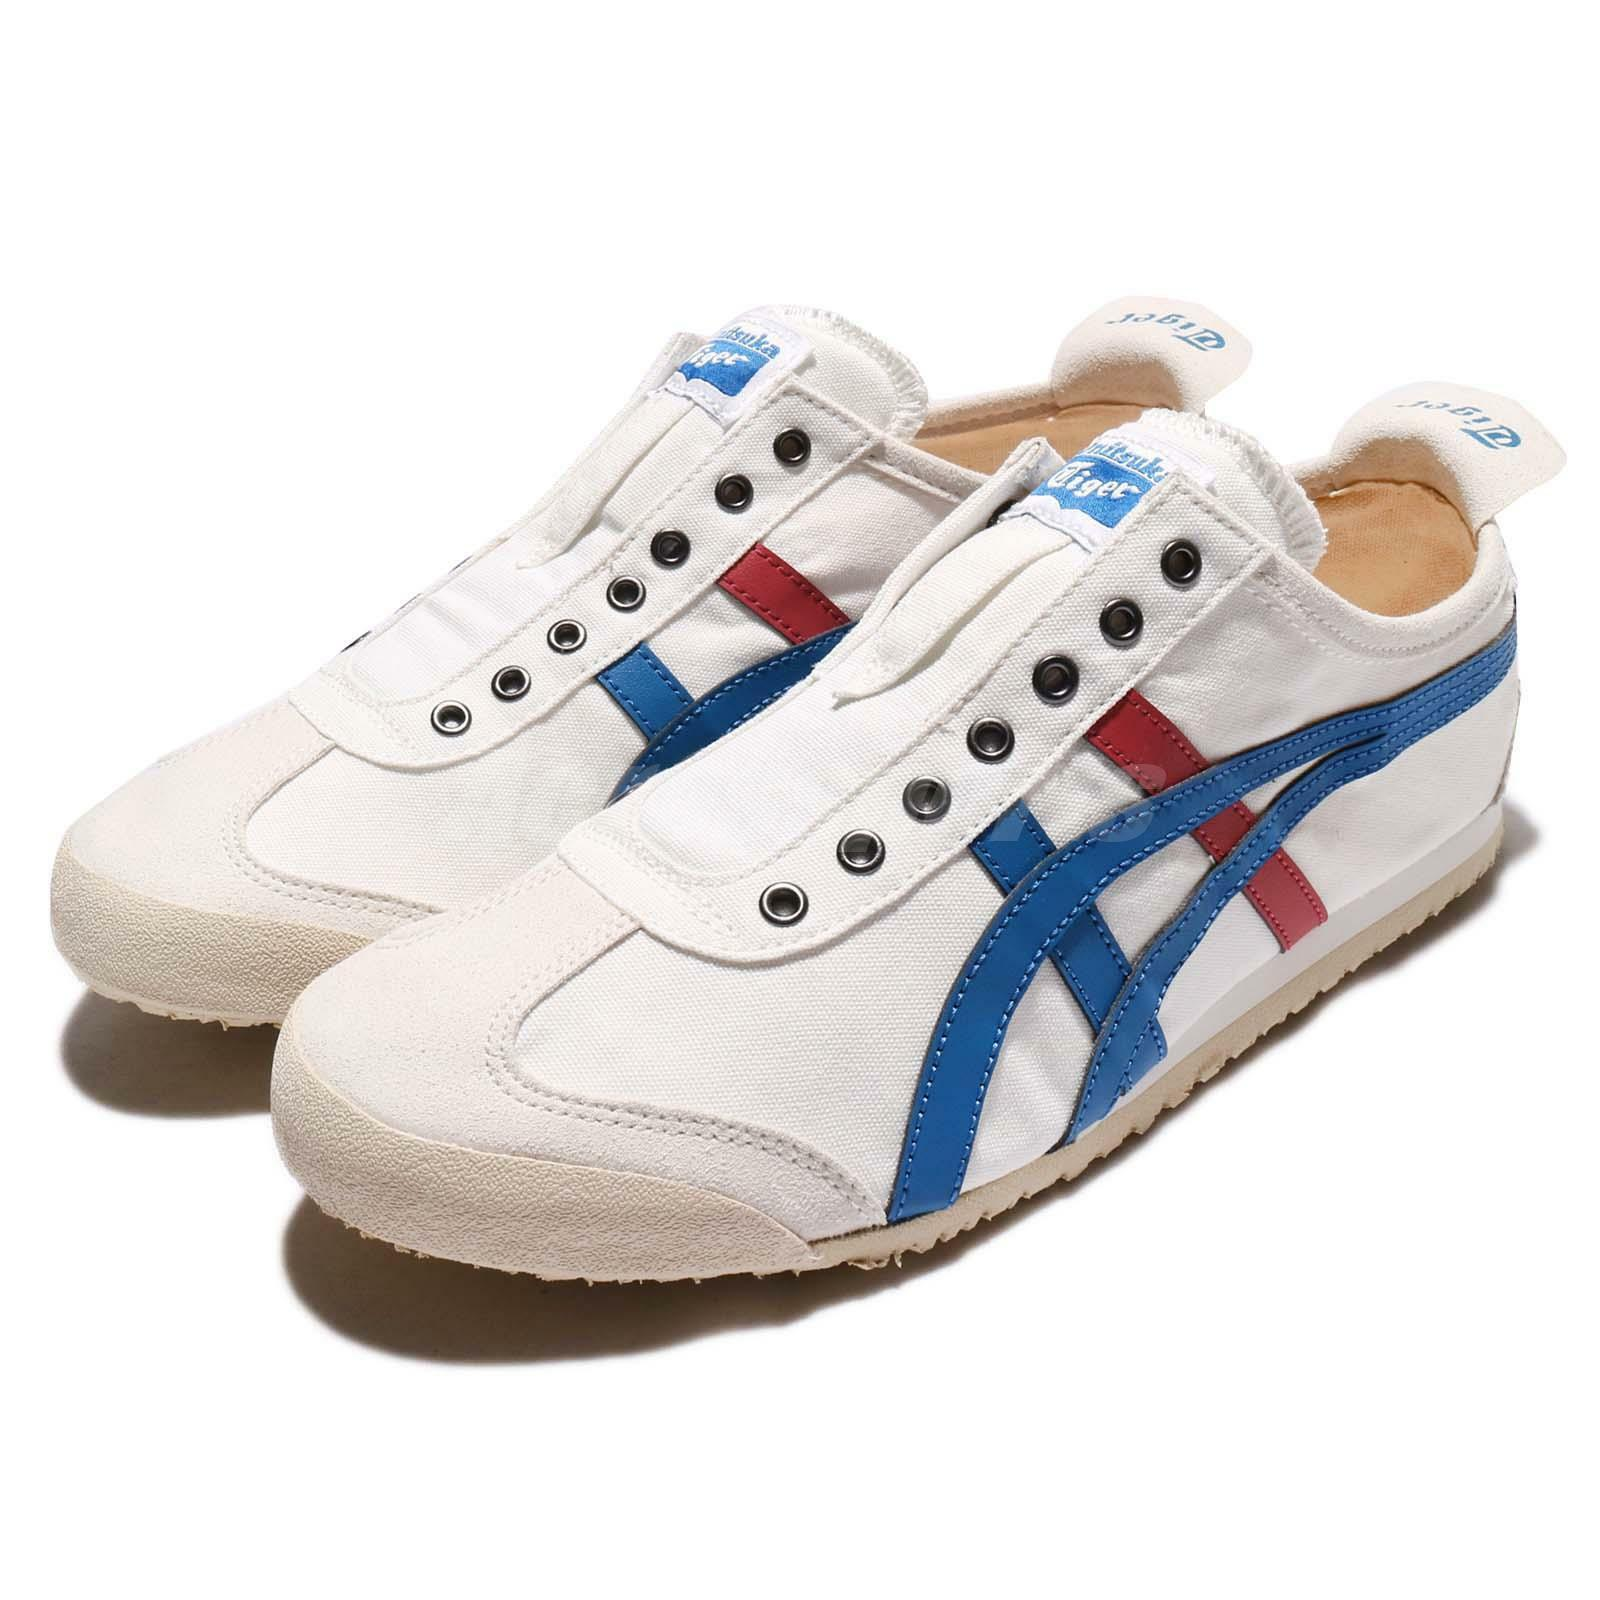 Asics Onitsuka Tiger Mexico 66 Slip-on blanc Navy rouge Hommes Décontracté Chaussures TH1B2N0143